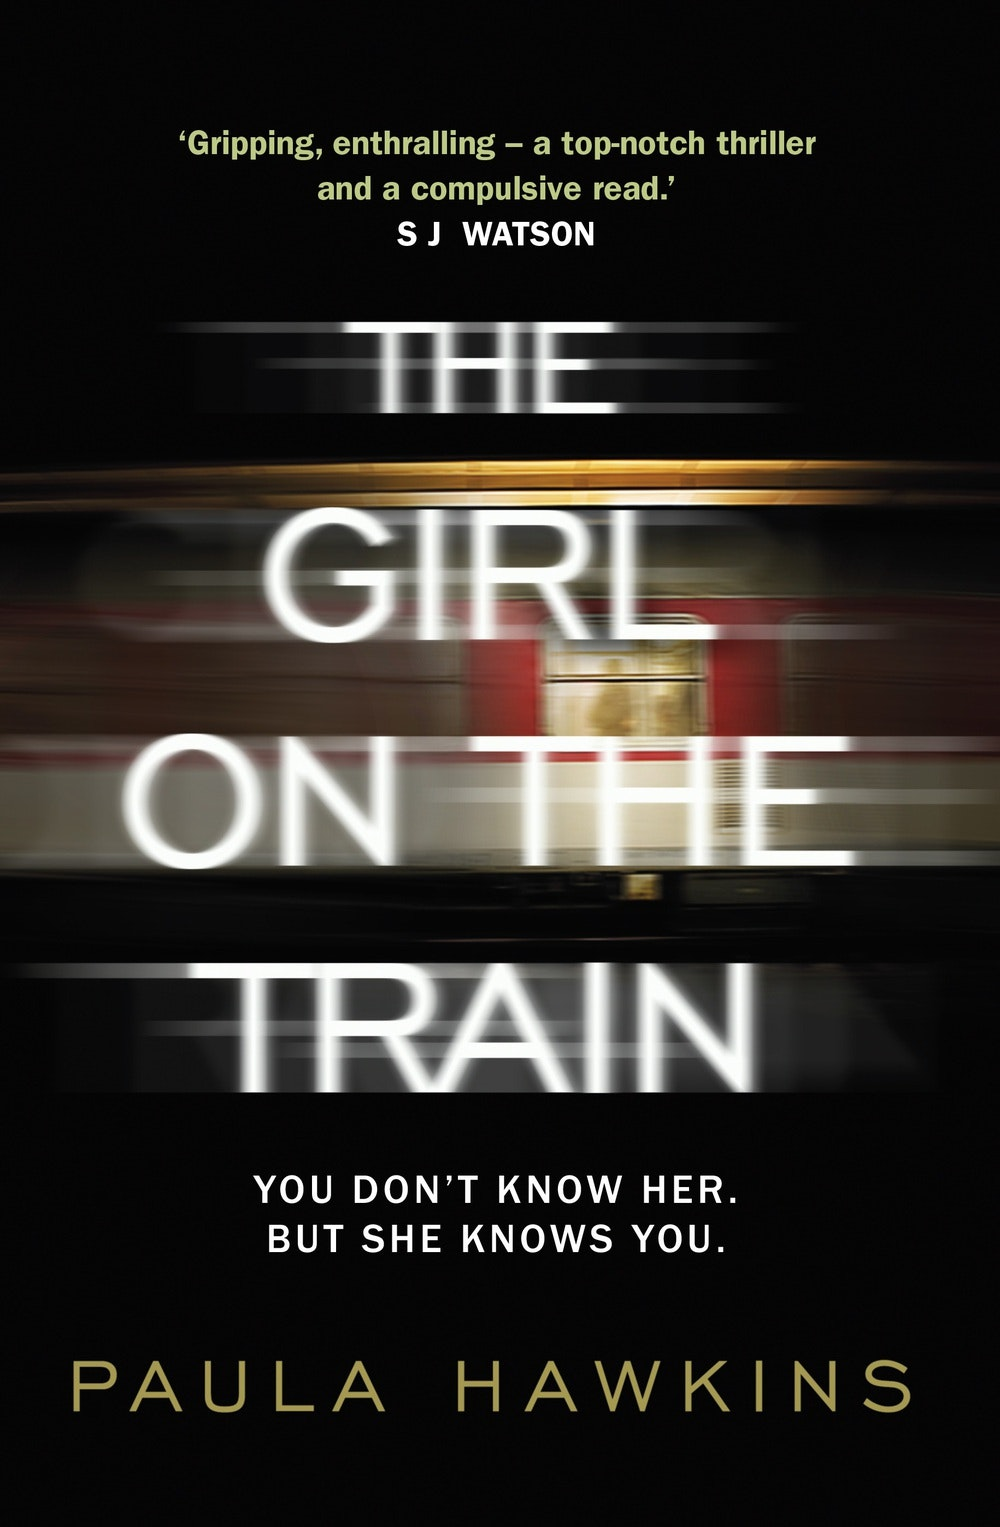 blurred image and text novel cover